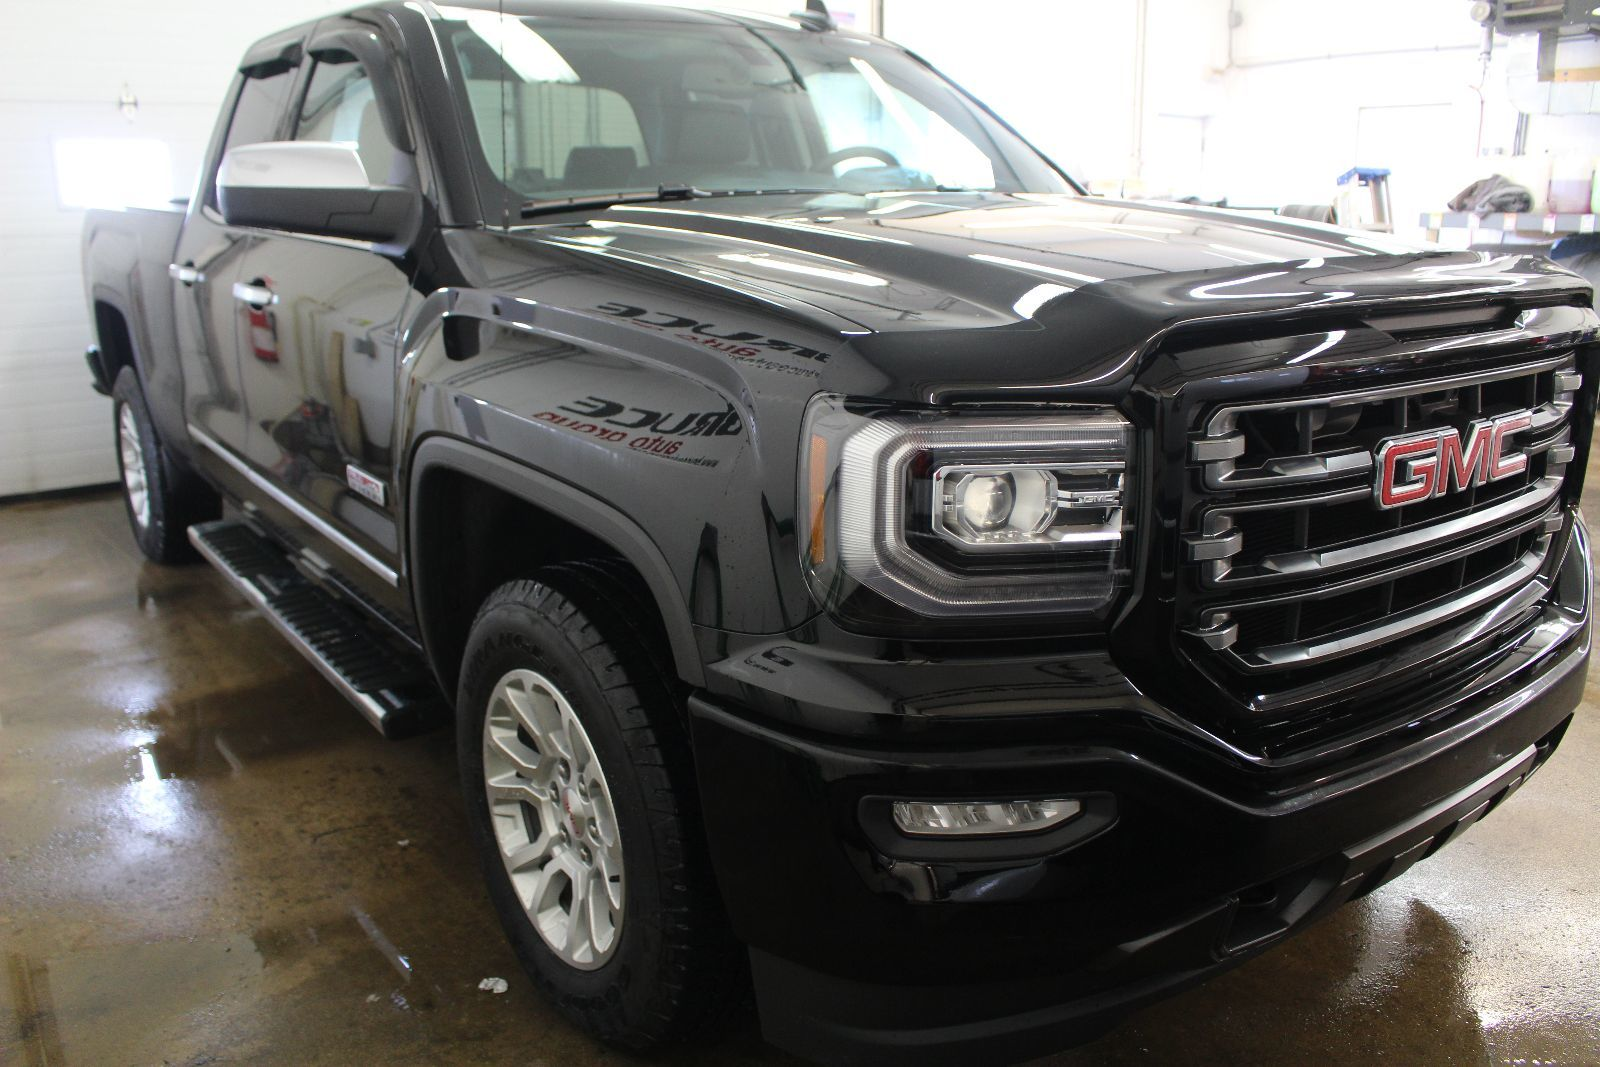 new 2016 gmc sierra 1500 sle 5 3l 8 cyl ecotec auto 4x4 shortbox ext cab for sale in middleton. Black Bedroom Furniture Sets. Home Design Ideas